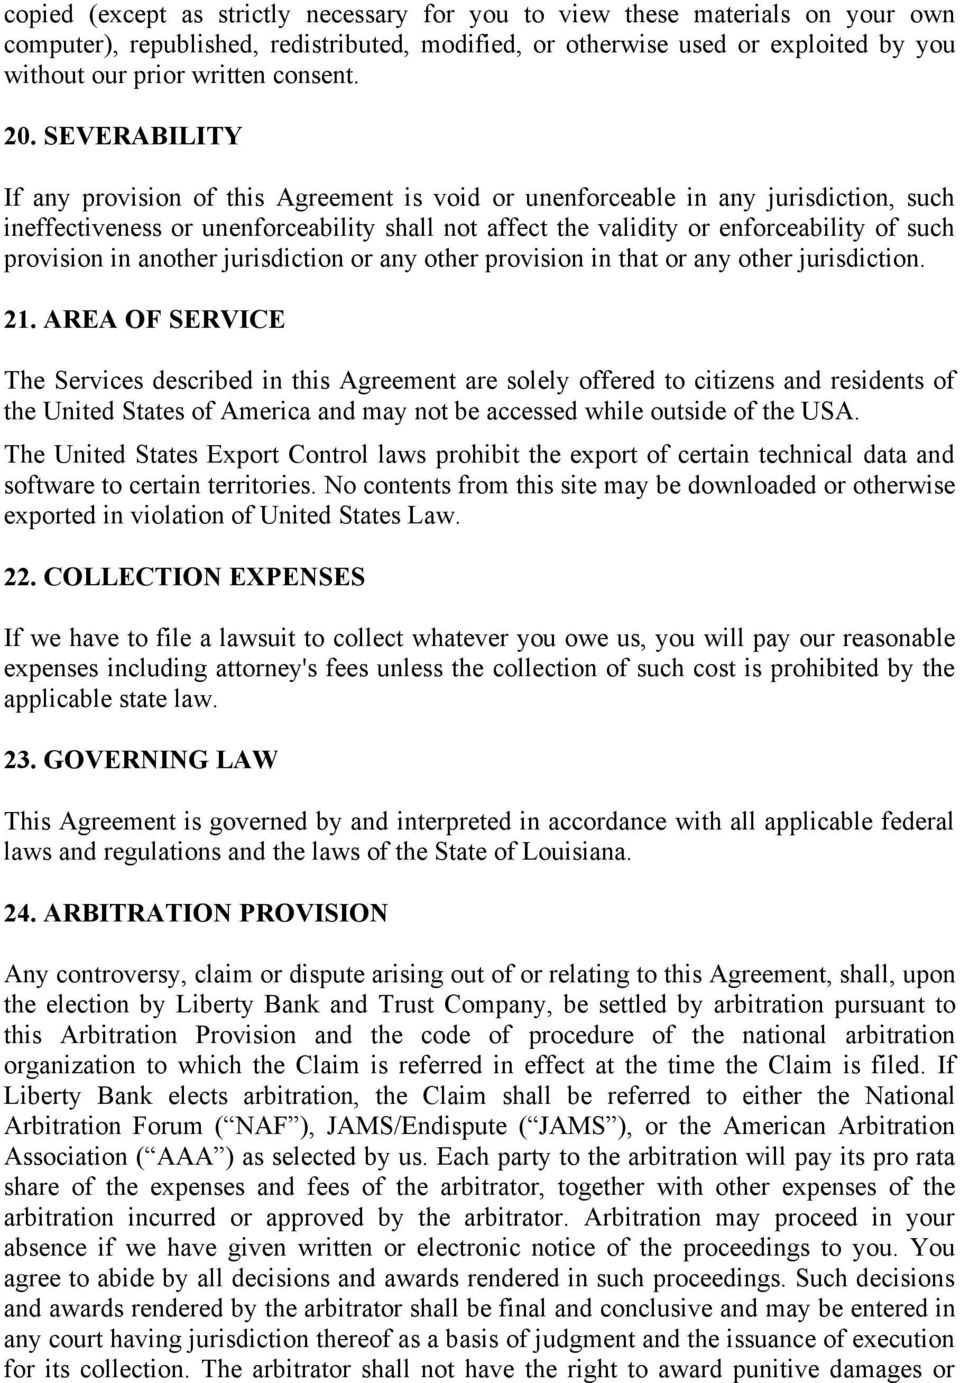 SEVERABILITY If any provision of this Agreement is void or unenforceable in any jurisdiction, such ineffectiveness or unenforceability shall not affect the validity or enforceability of such